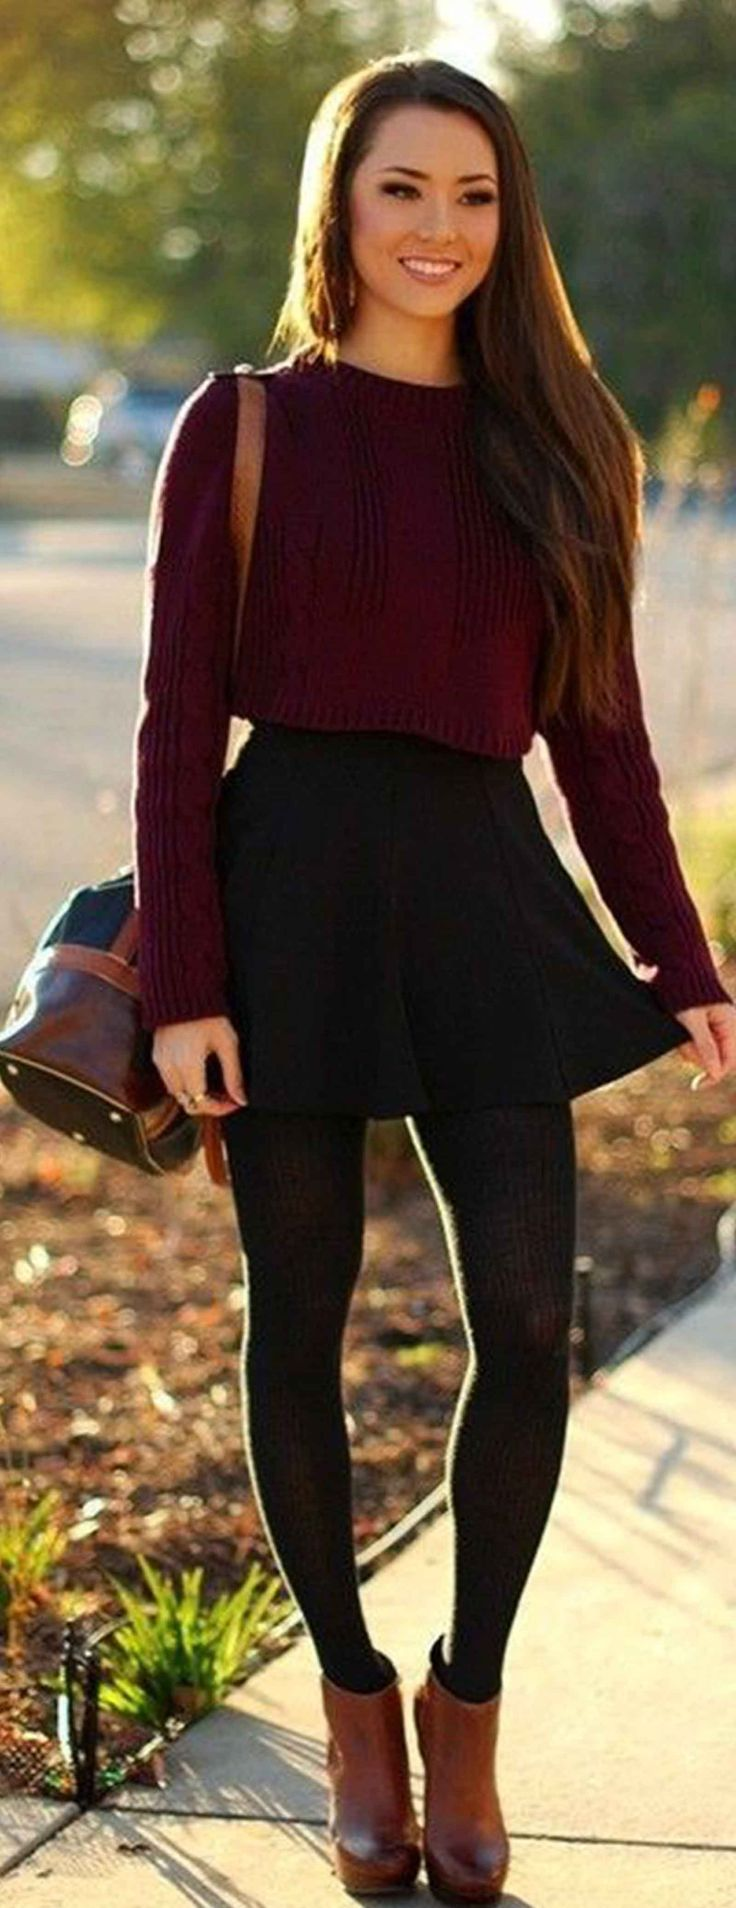 burgundy sweater, black high-waisted skirt, black tights and ankle booties. #fallstyle #trends #bloggerstyle